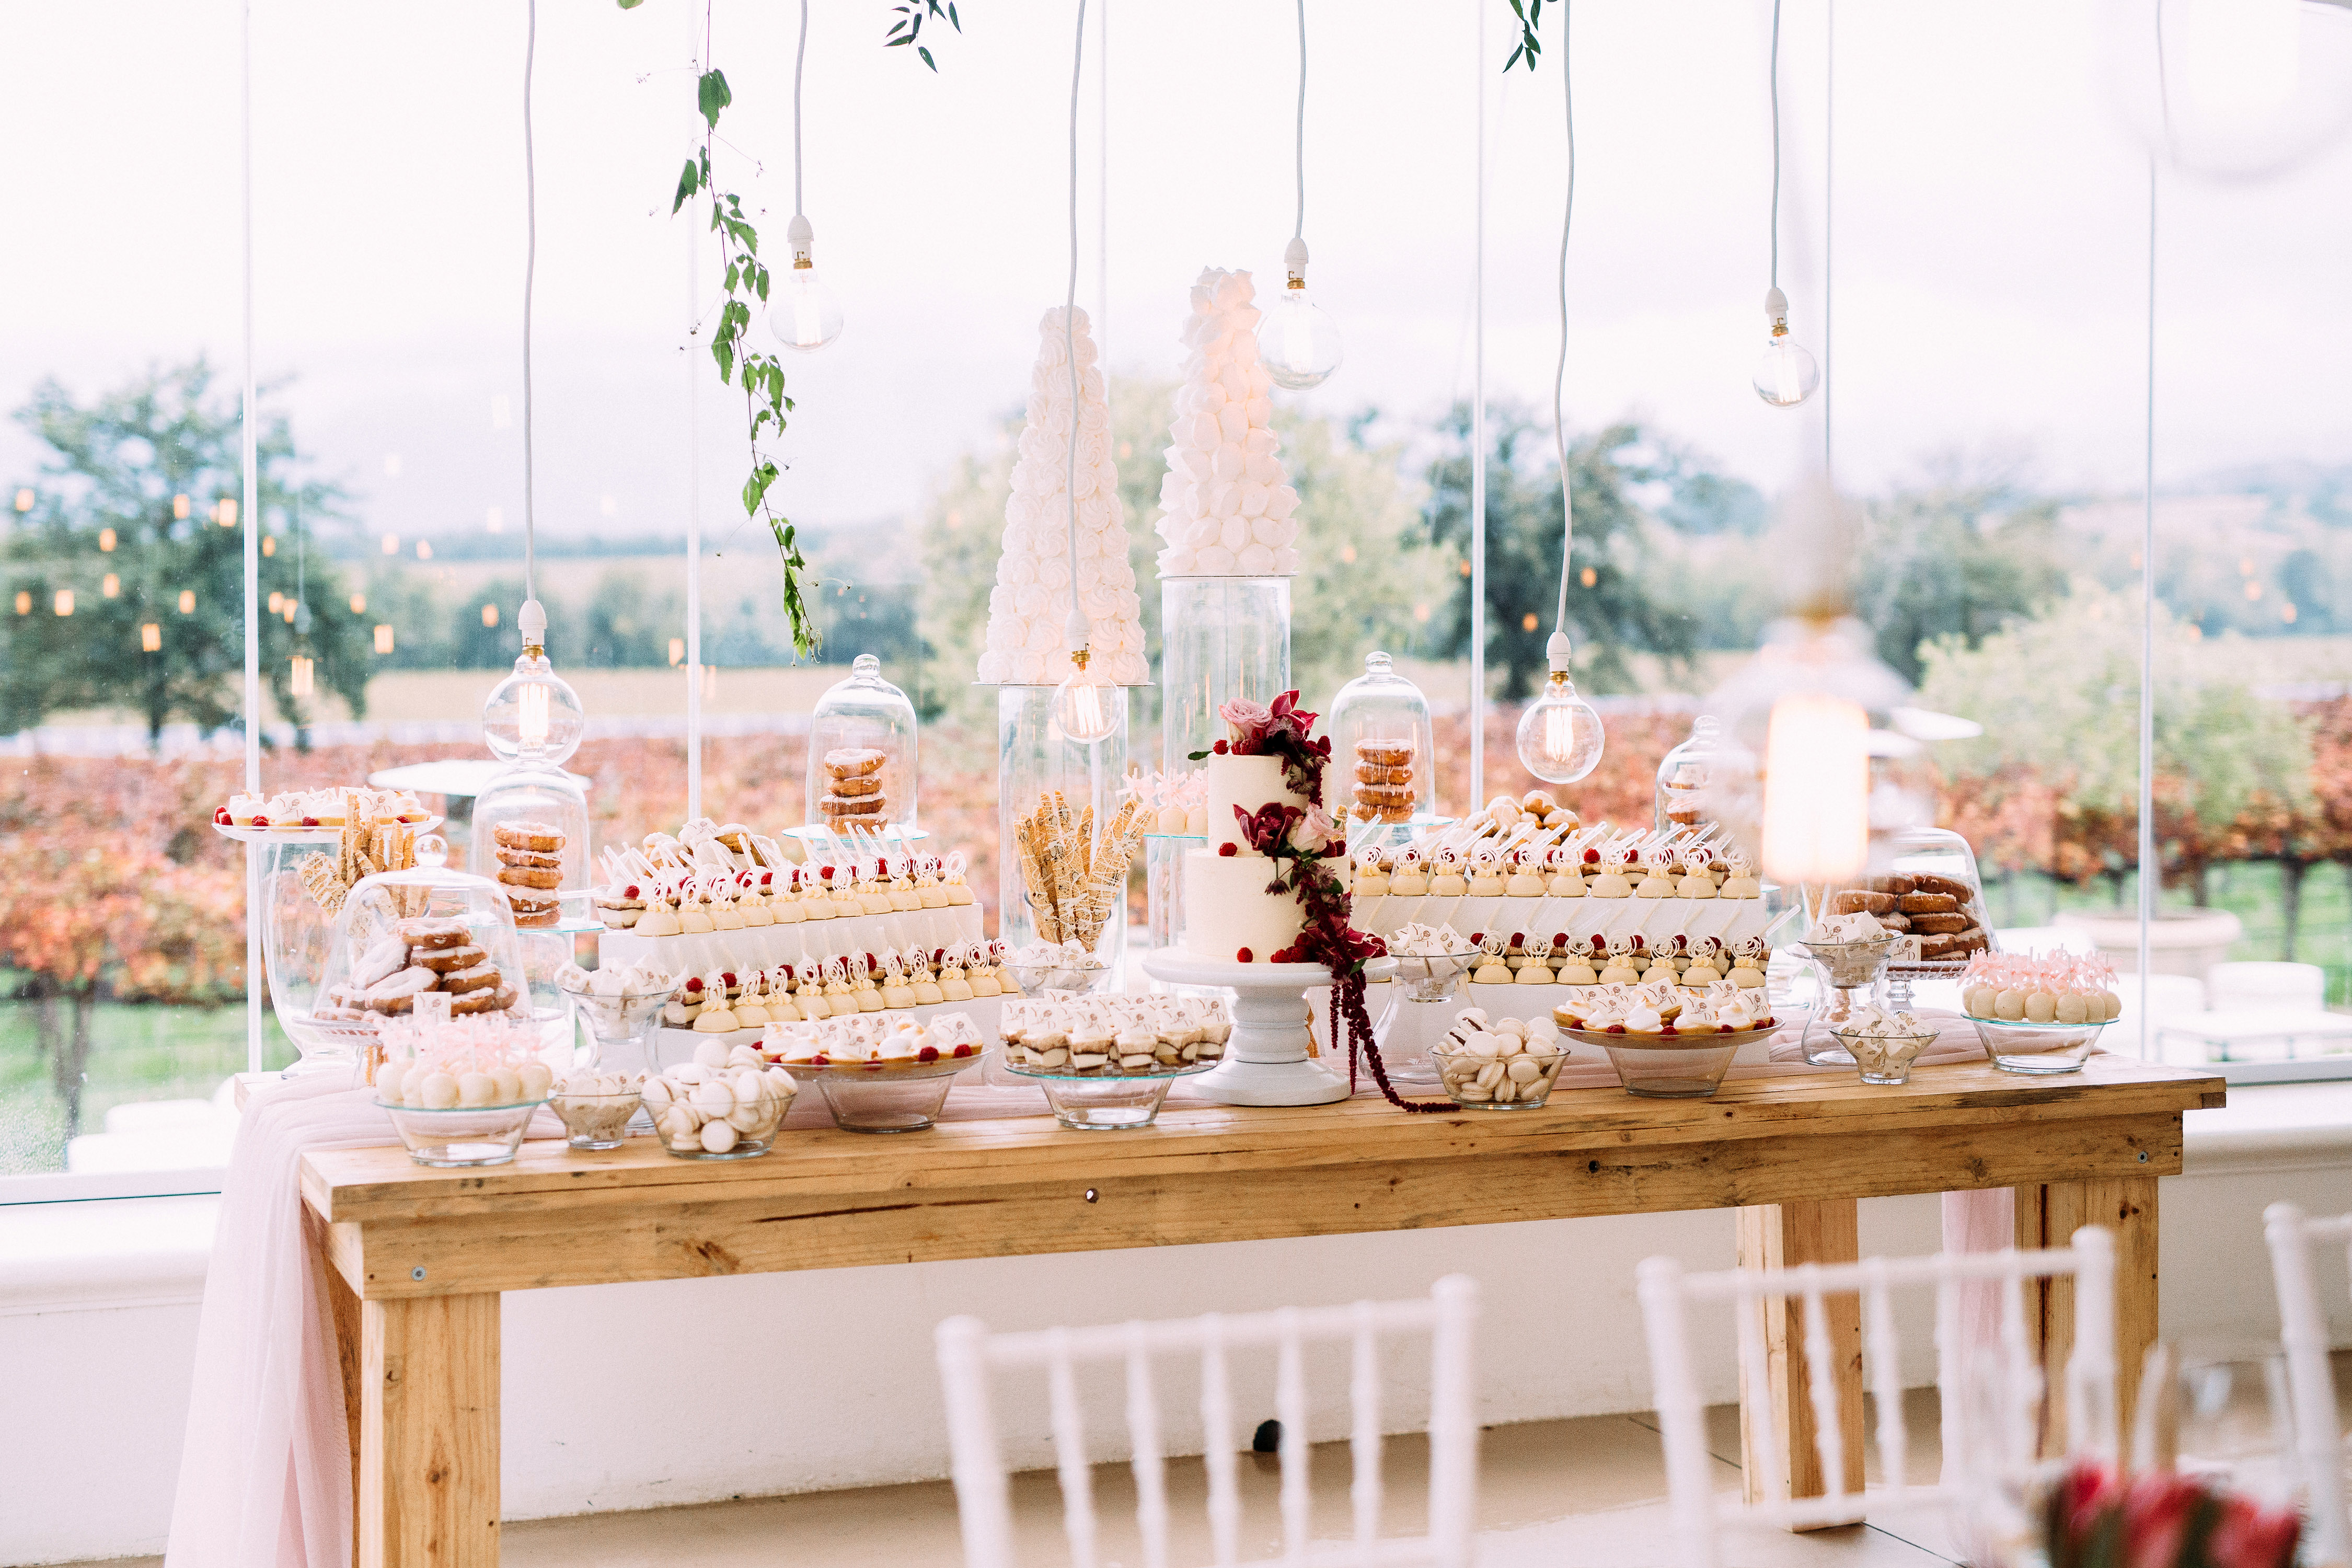 yolana douglas wedding dessert table